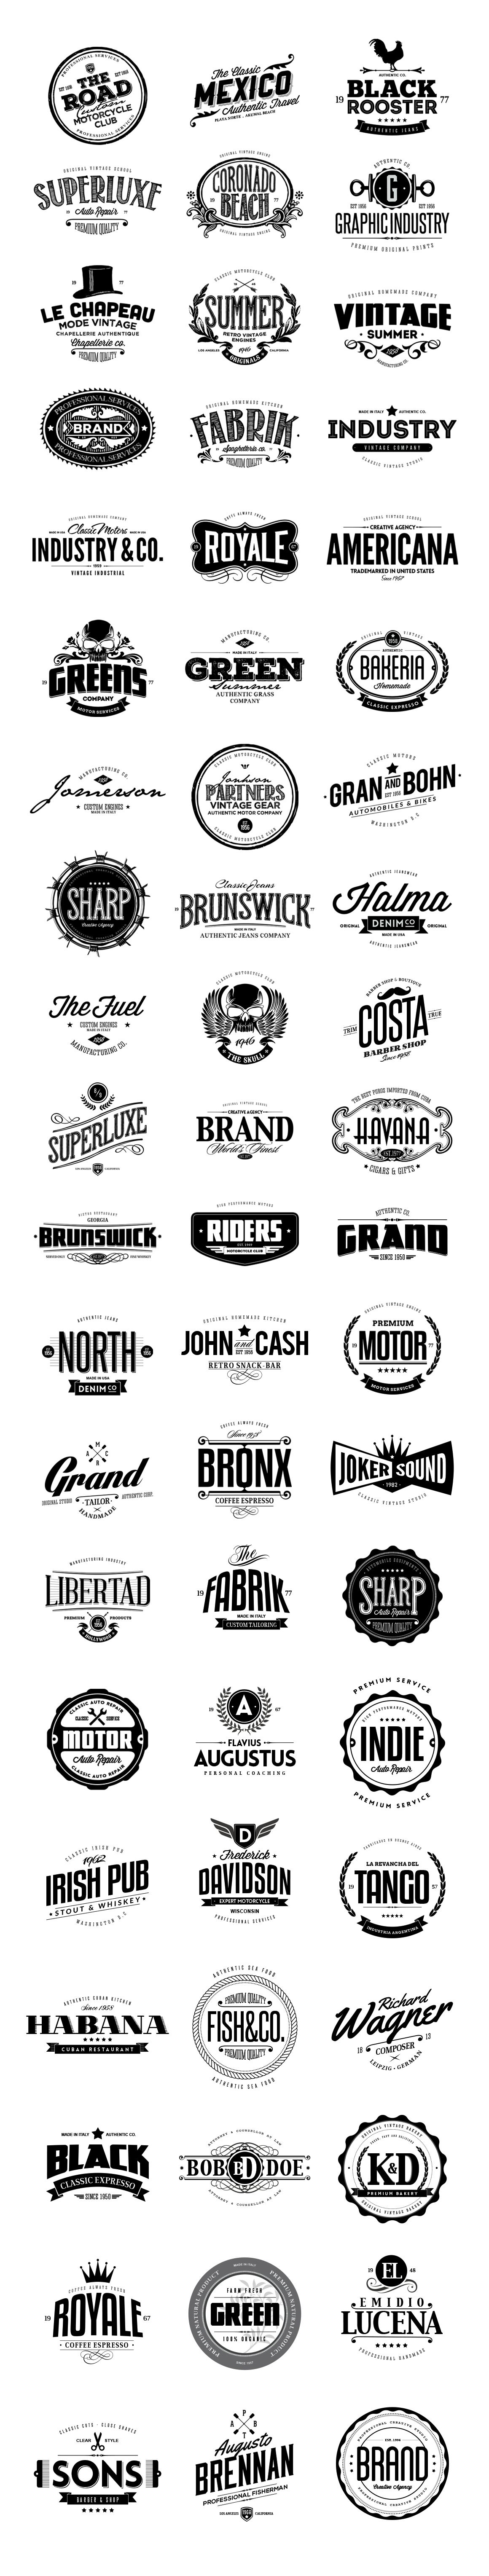 60 Premium Badges & Logos bundle, perfect for poster, sticker, packaging product design, t-shirt design, corporative identity and much more! Each Badge & Logo have been created with care